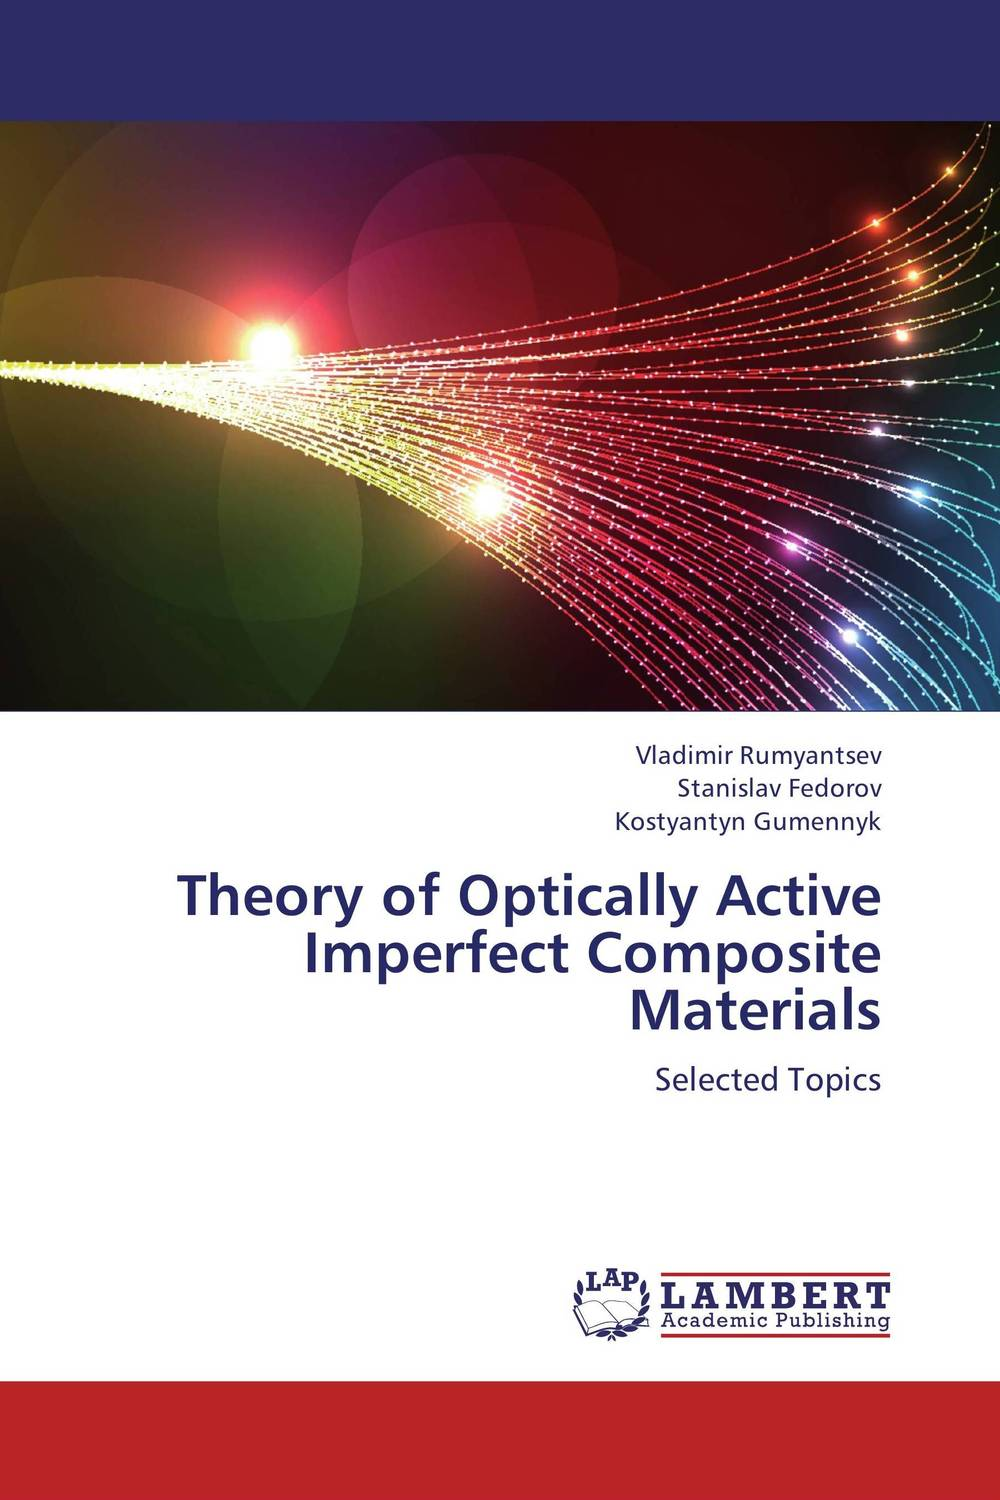 Theory of Optically Active Imperfect Composite Materials computational modeling of damage and fracture in composite materials